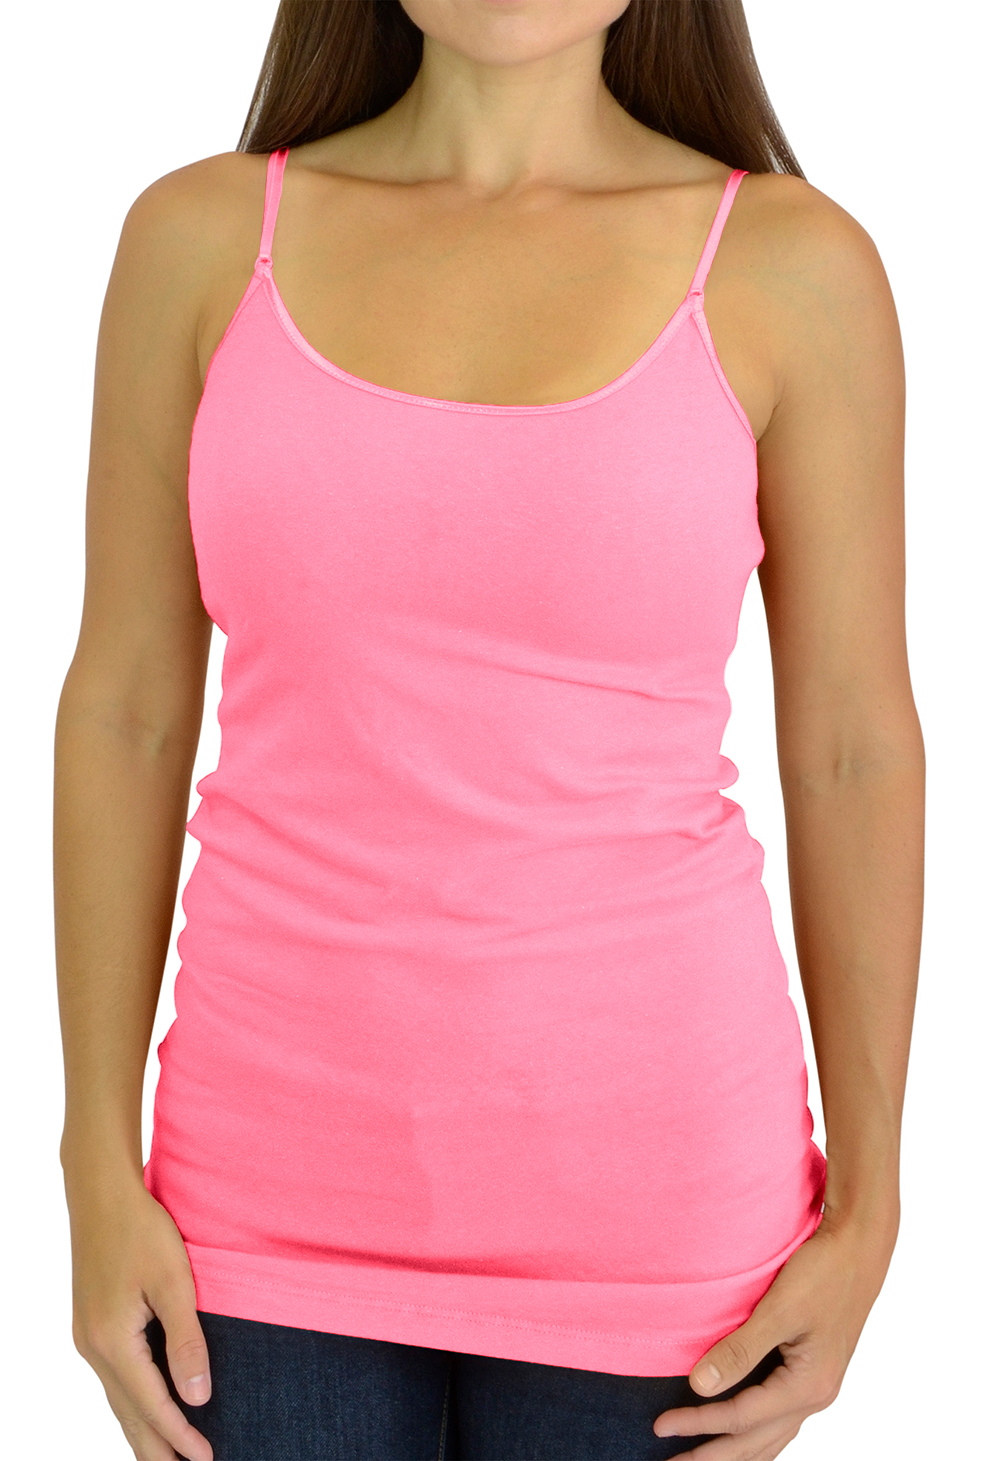 Cami Camisole Adjustable Spaghetti Strap Tank Top for Women and Girls by Belle Donne - Bright Pink Large